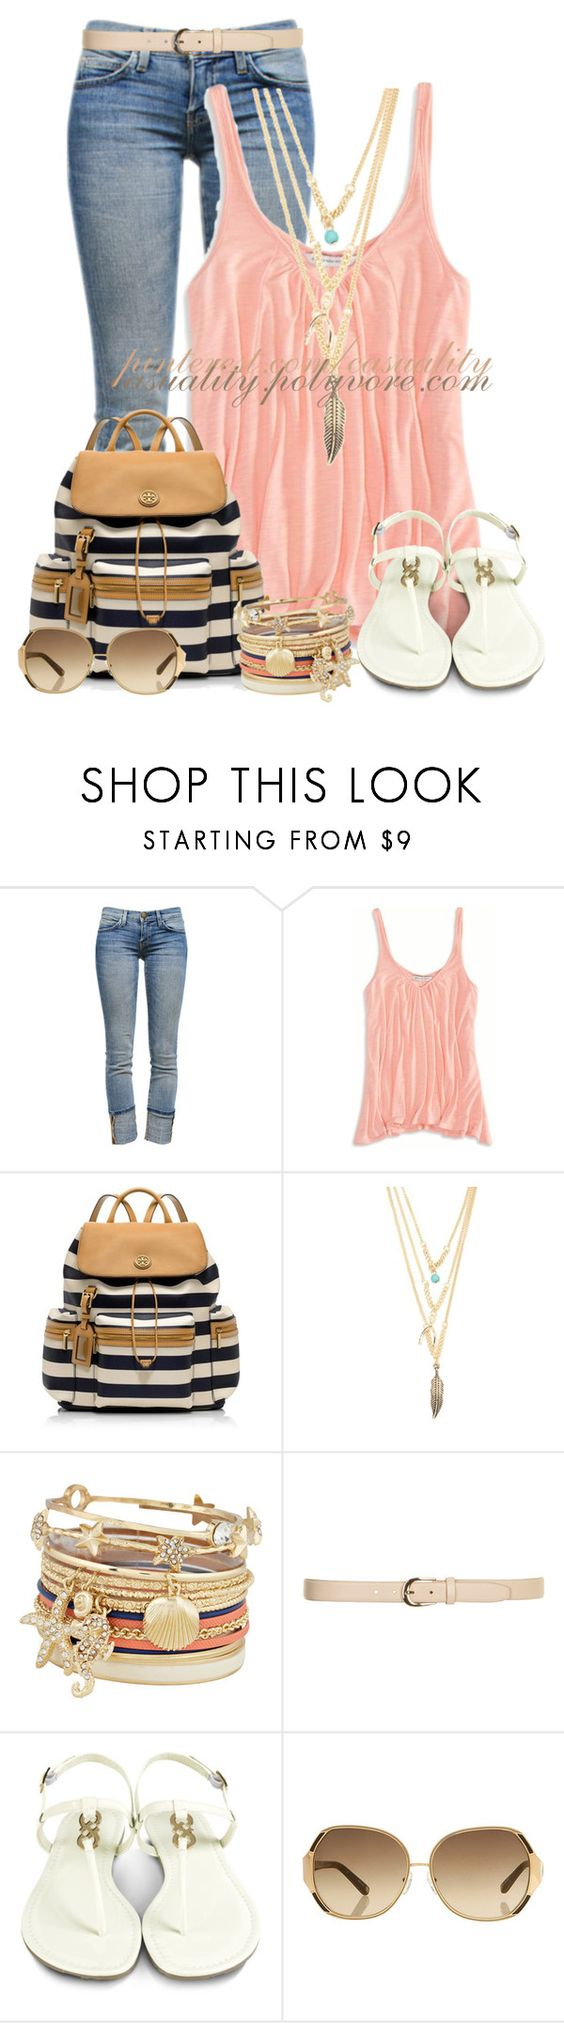 """""""Summer Boardwalk Chic"""" by casuality ❤ liked on Polyvore featuring Current/Elliott, American Eagle Outfitters, Tory Burch, With Love From CA, ALDO, Dorothy Perkins, Cole Haan, Oscar de la Renta, women's clothing and women's fashion"""